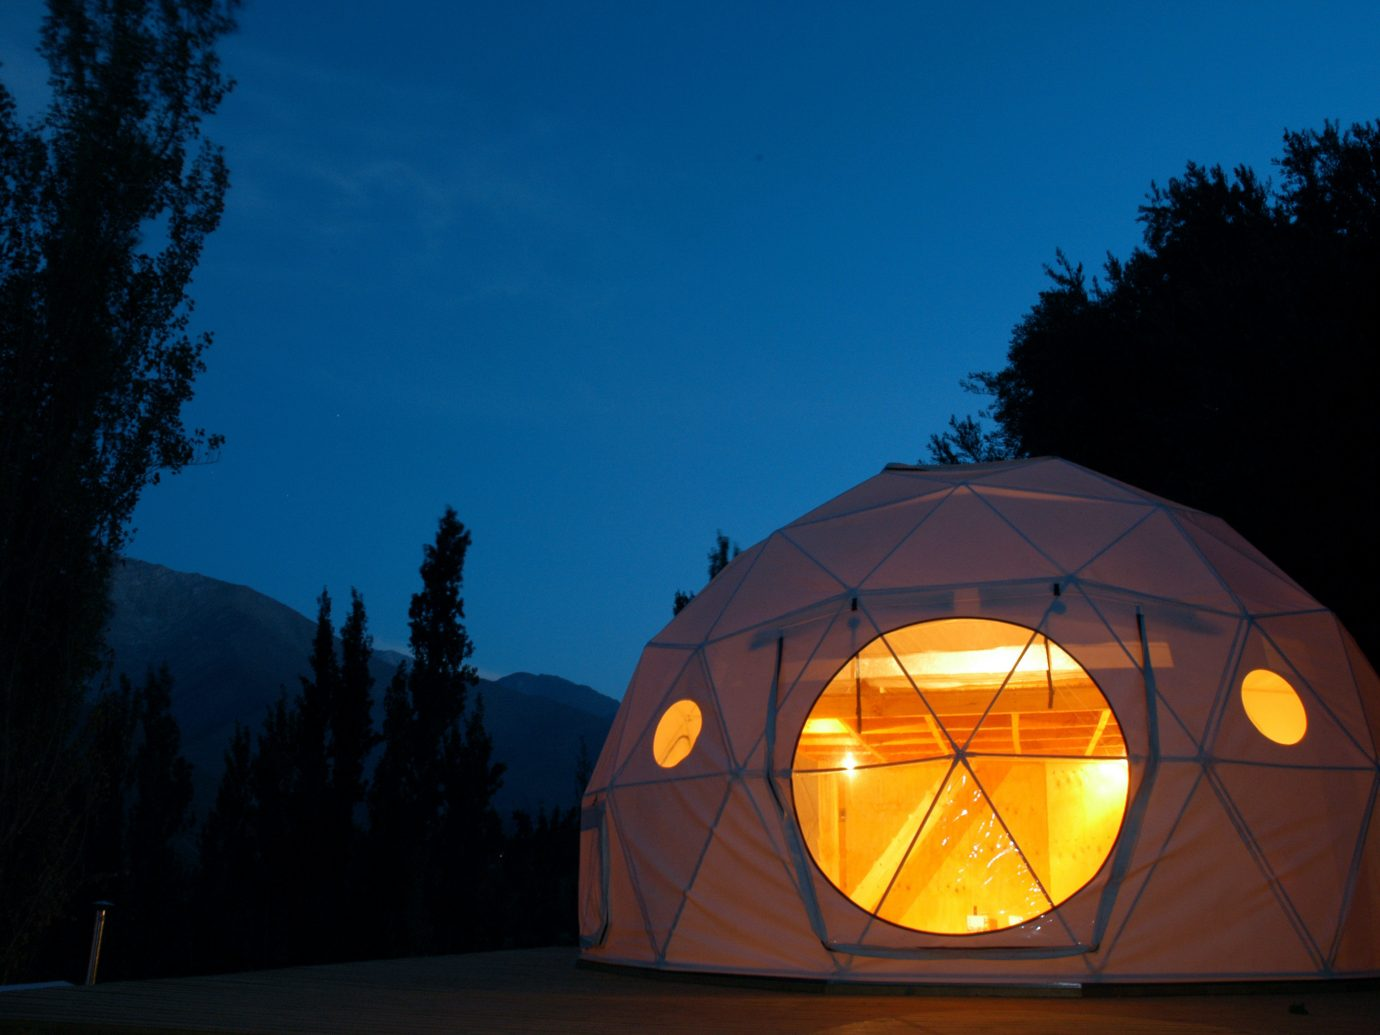 Architecture Boutique Eco Exterior Grounds Hotels Lodge Offbeat Romance Rustic Scenic views sky tree outdoor building night light dome darkness lighting evening sunlight tent